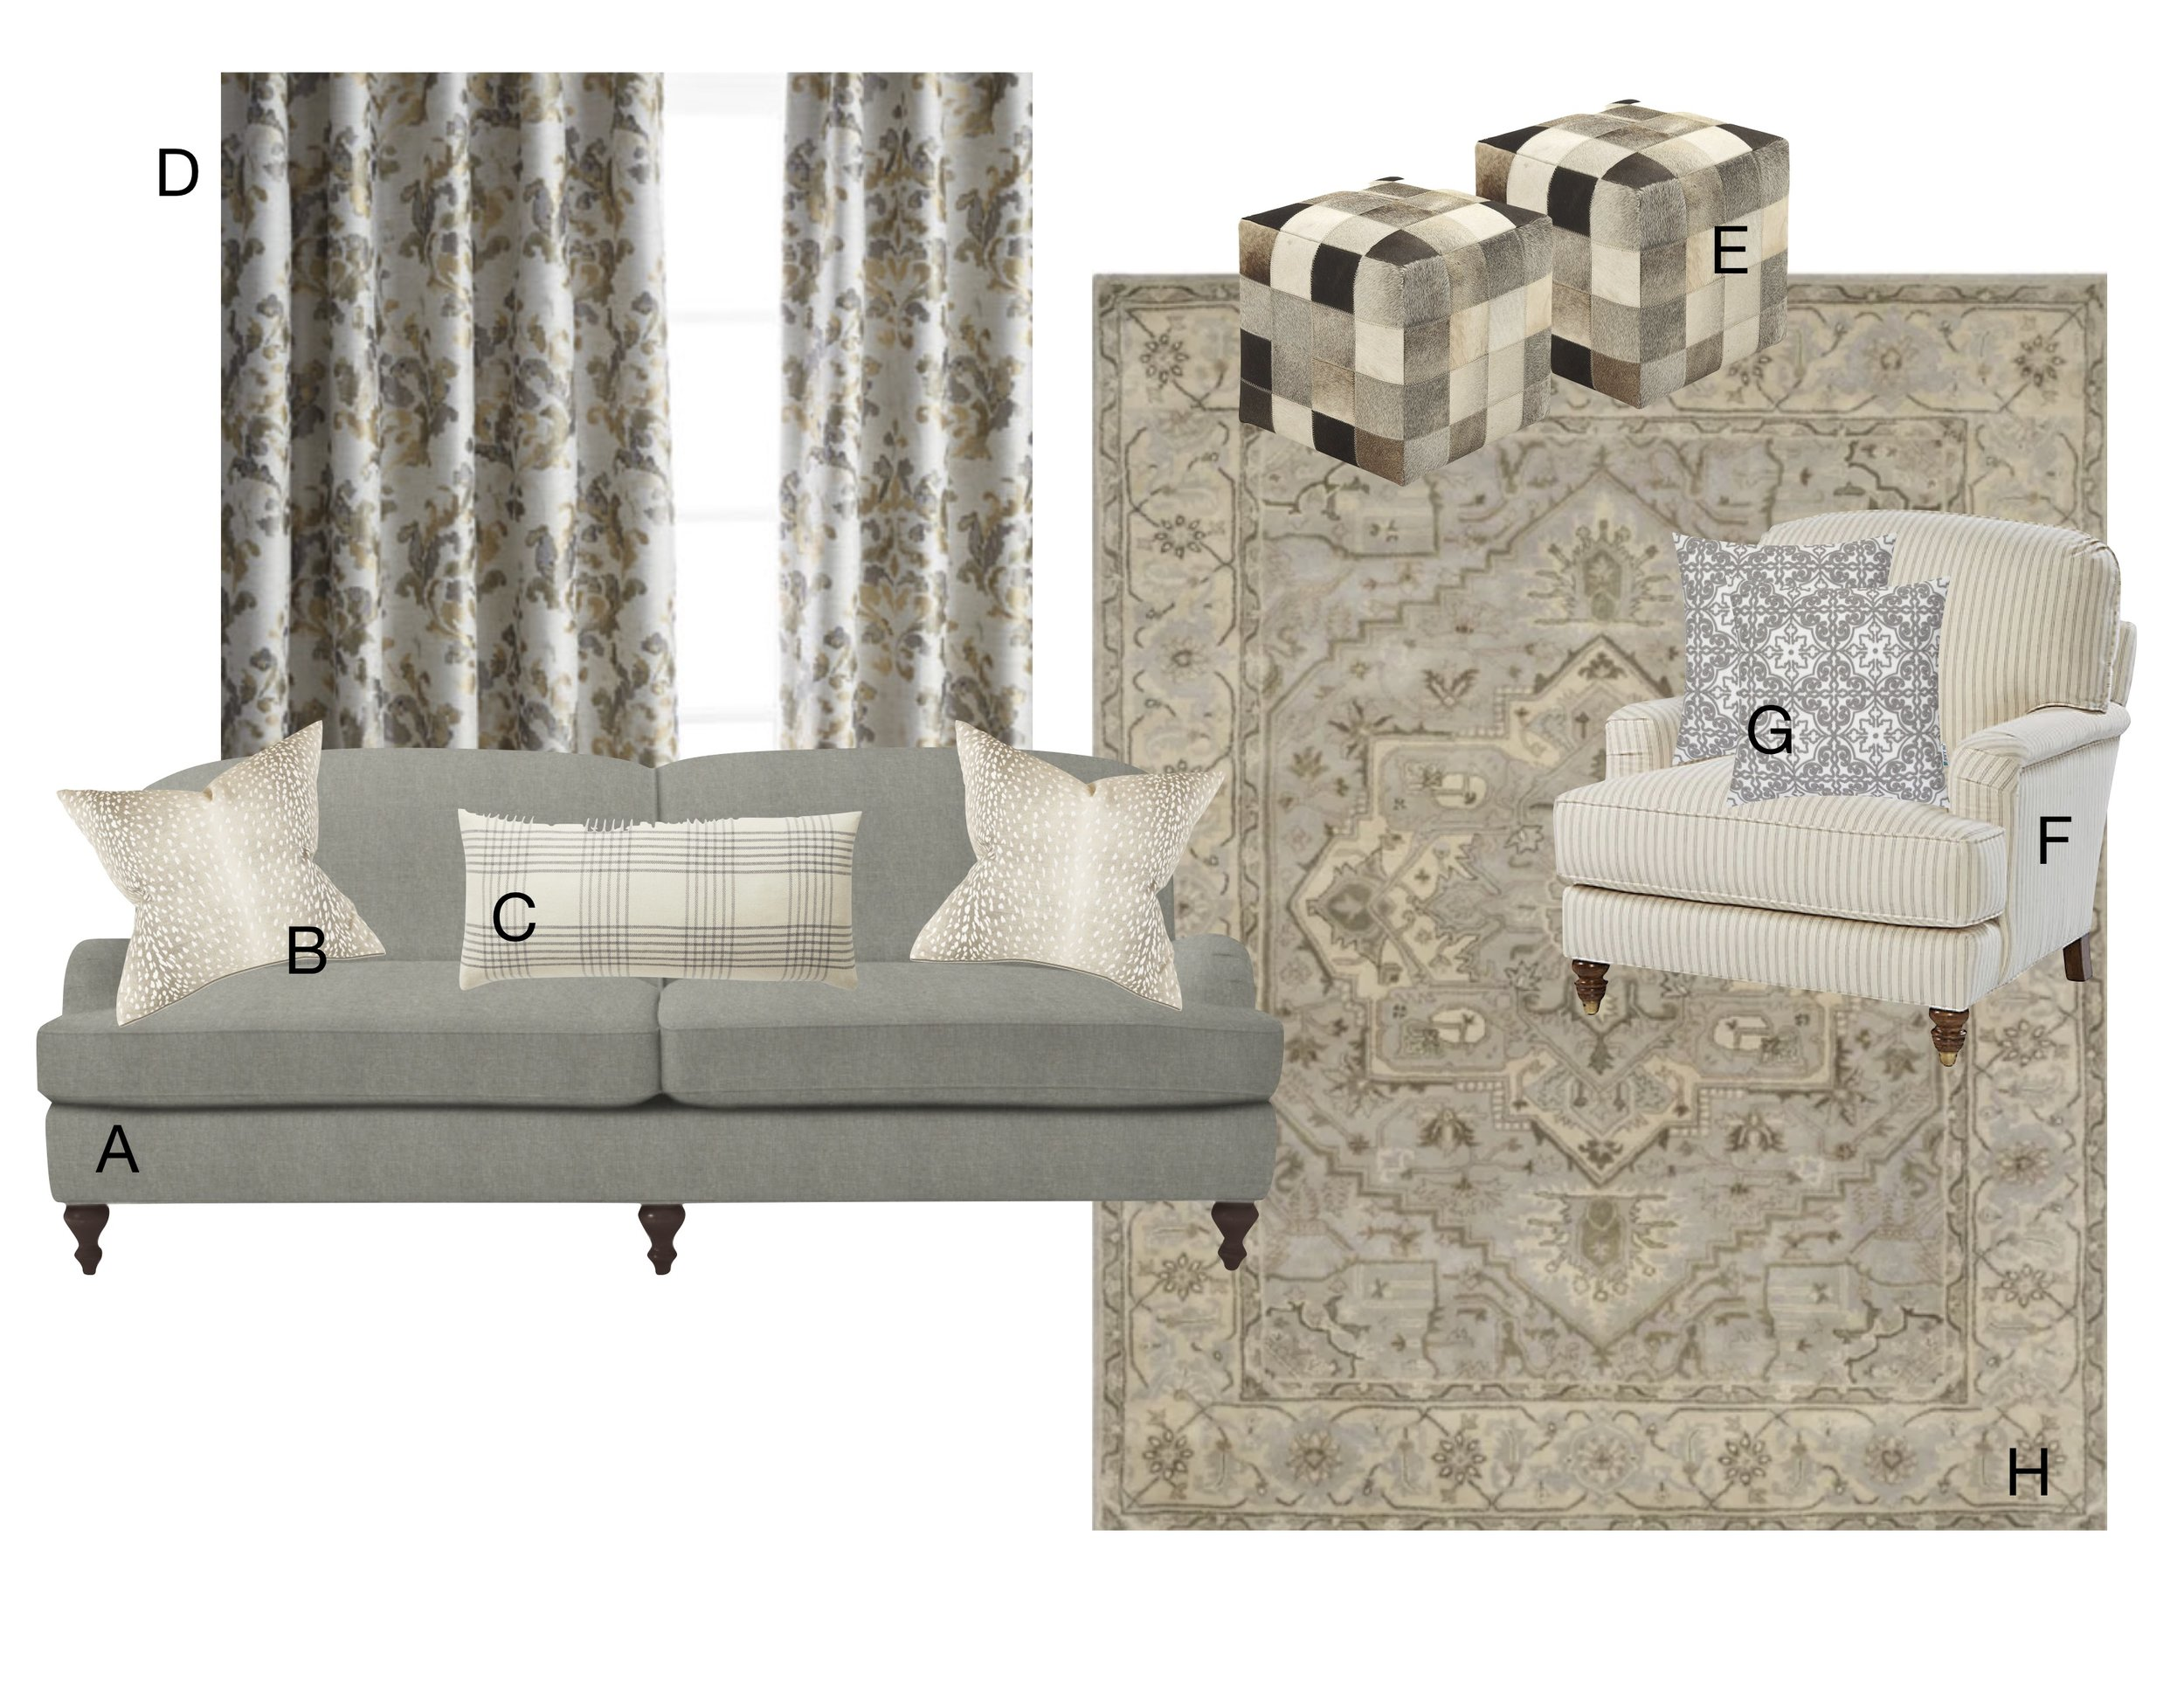 A Custom English arm sofa    |    B Antelope pattern pillow    |    C Windowpane check pillow    |    D Gray floral drapery panels    |    E Leather hide ottomans    |    F Striped club chair    |    G Embroidered pillows    |    H Grey/beige wool area rug